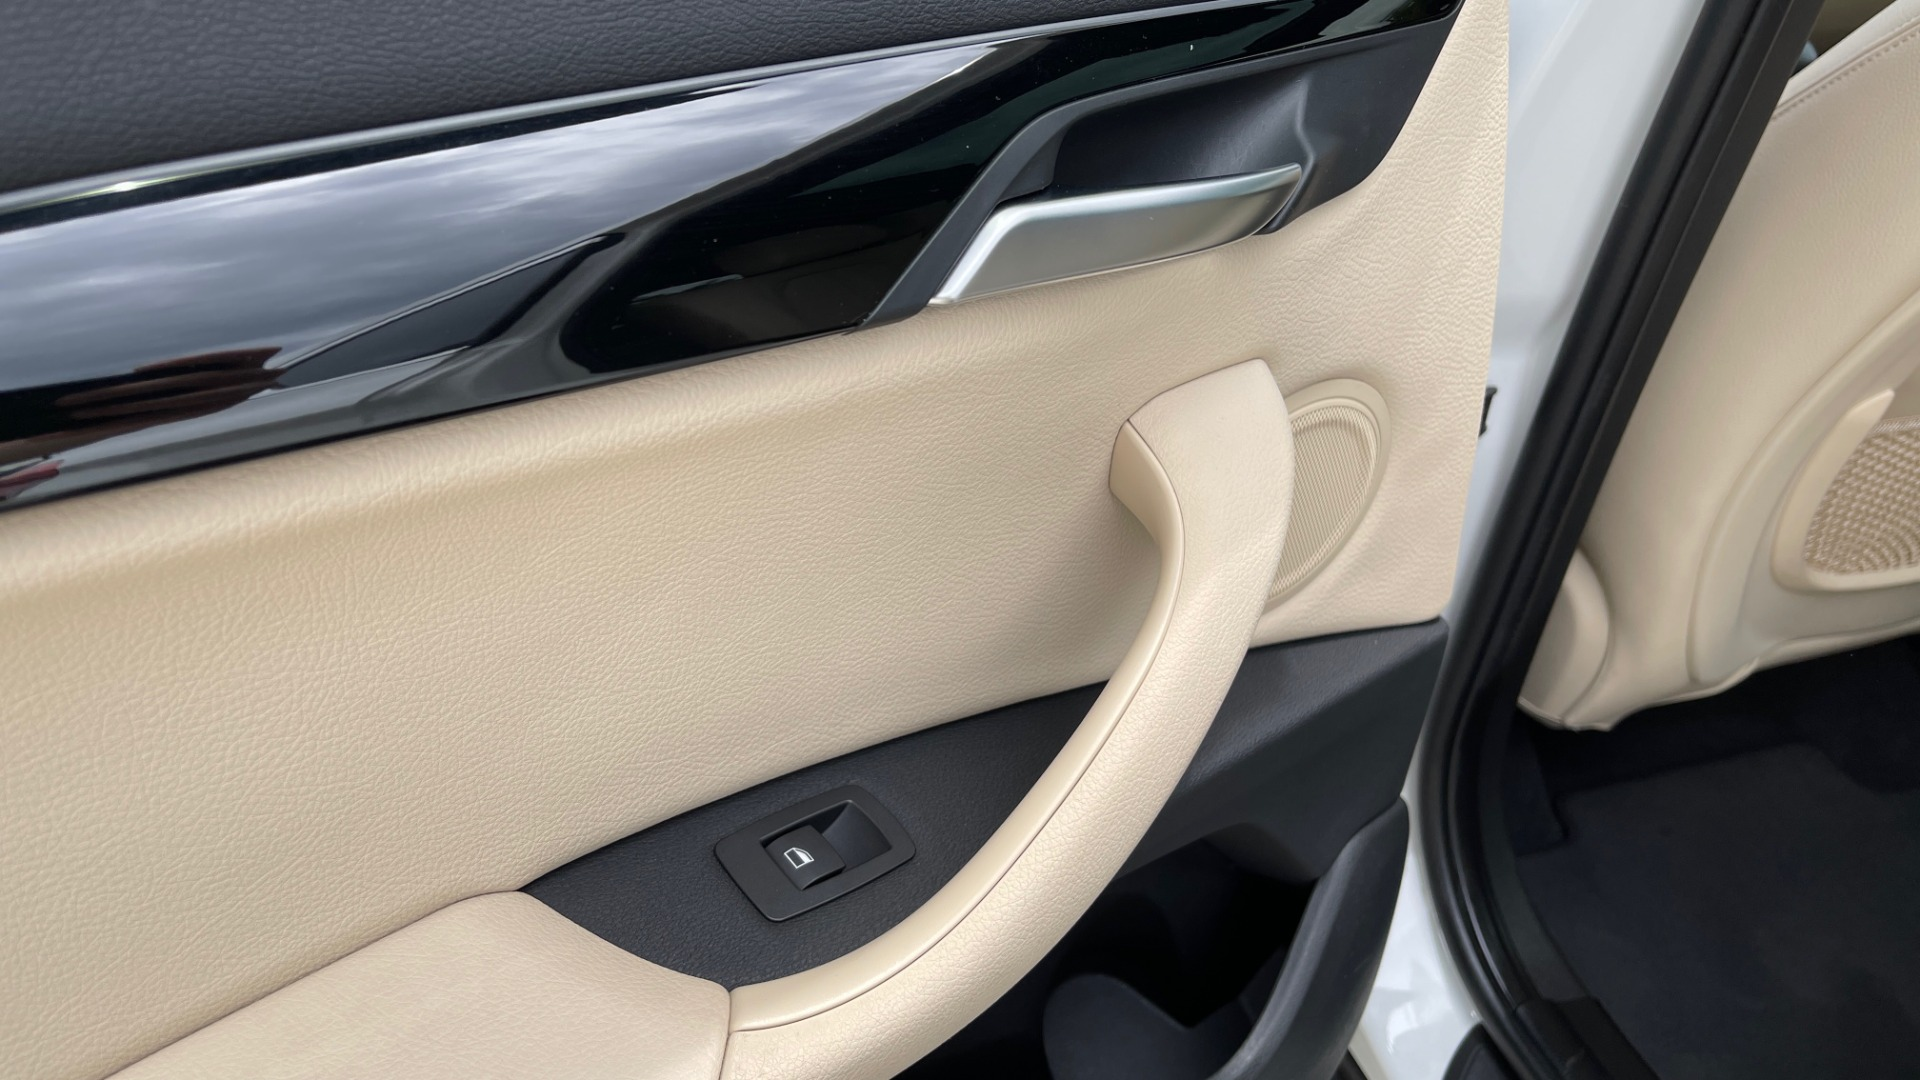 Used 2018 BMW X1 XDRIVE28I / CONV PKG / PANO-ROOF / HTD STS / PARK ASST / REARVIEW for sale $30,995 at Formula Imports in Charlotte NC 28227 68